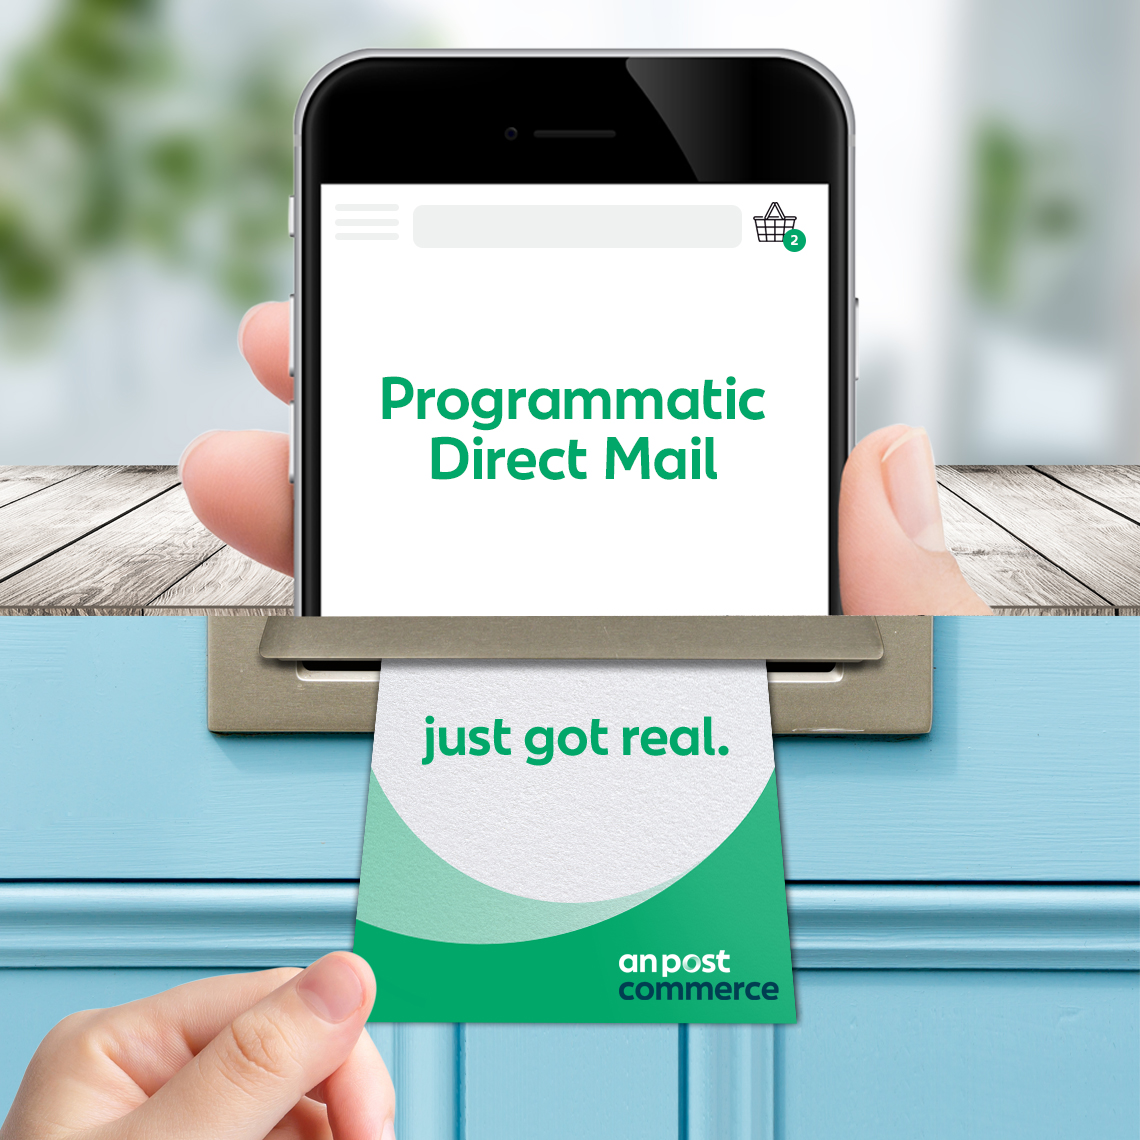 Programmatic direct mail advert on a phone